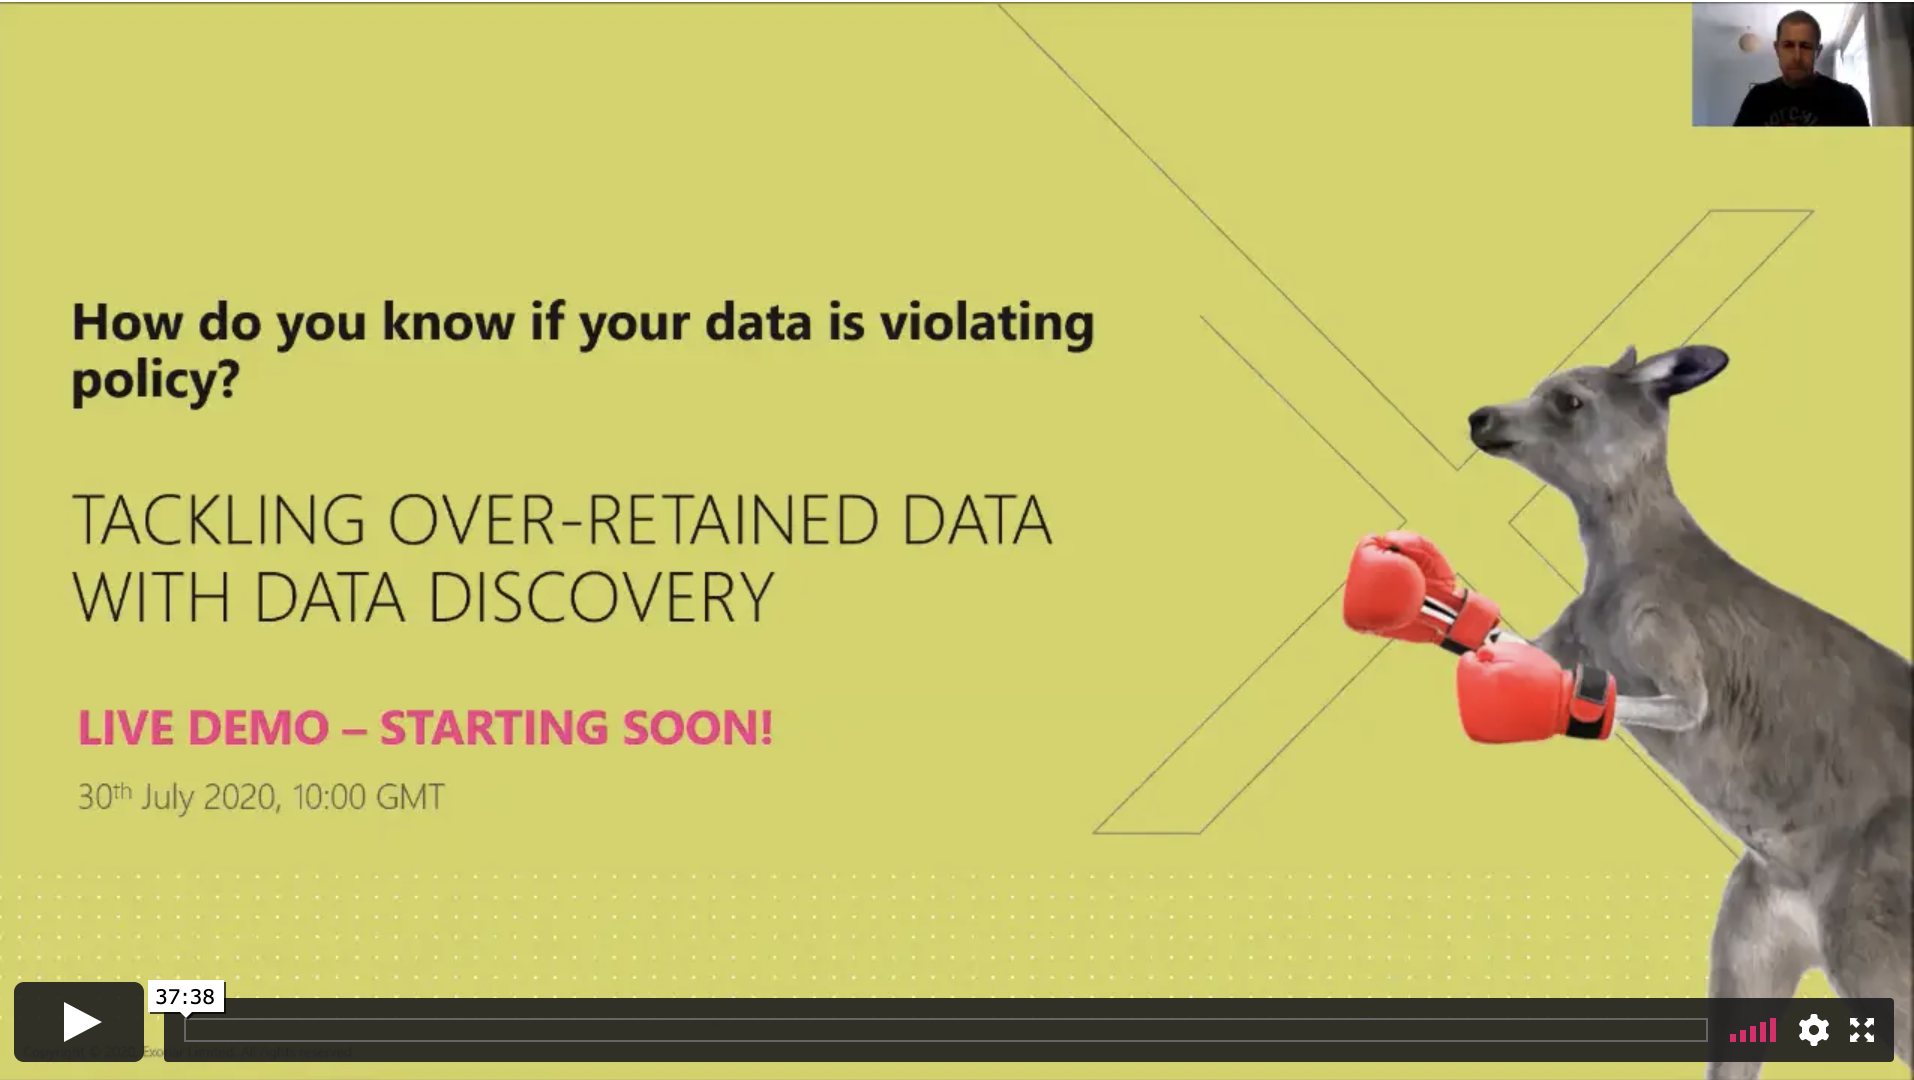 Tackling over-retained data